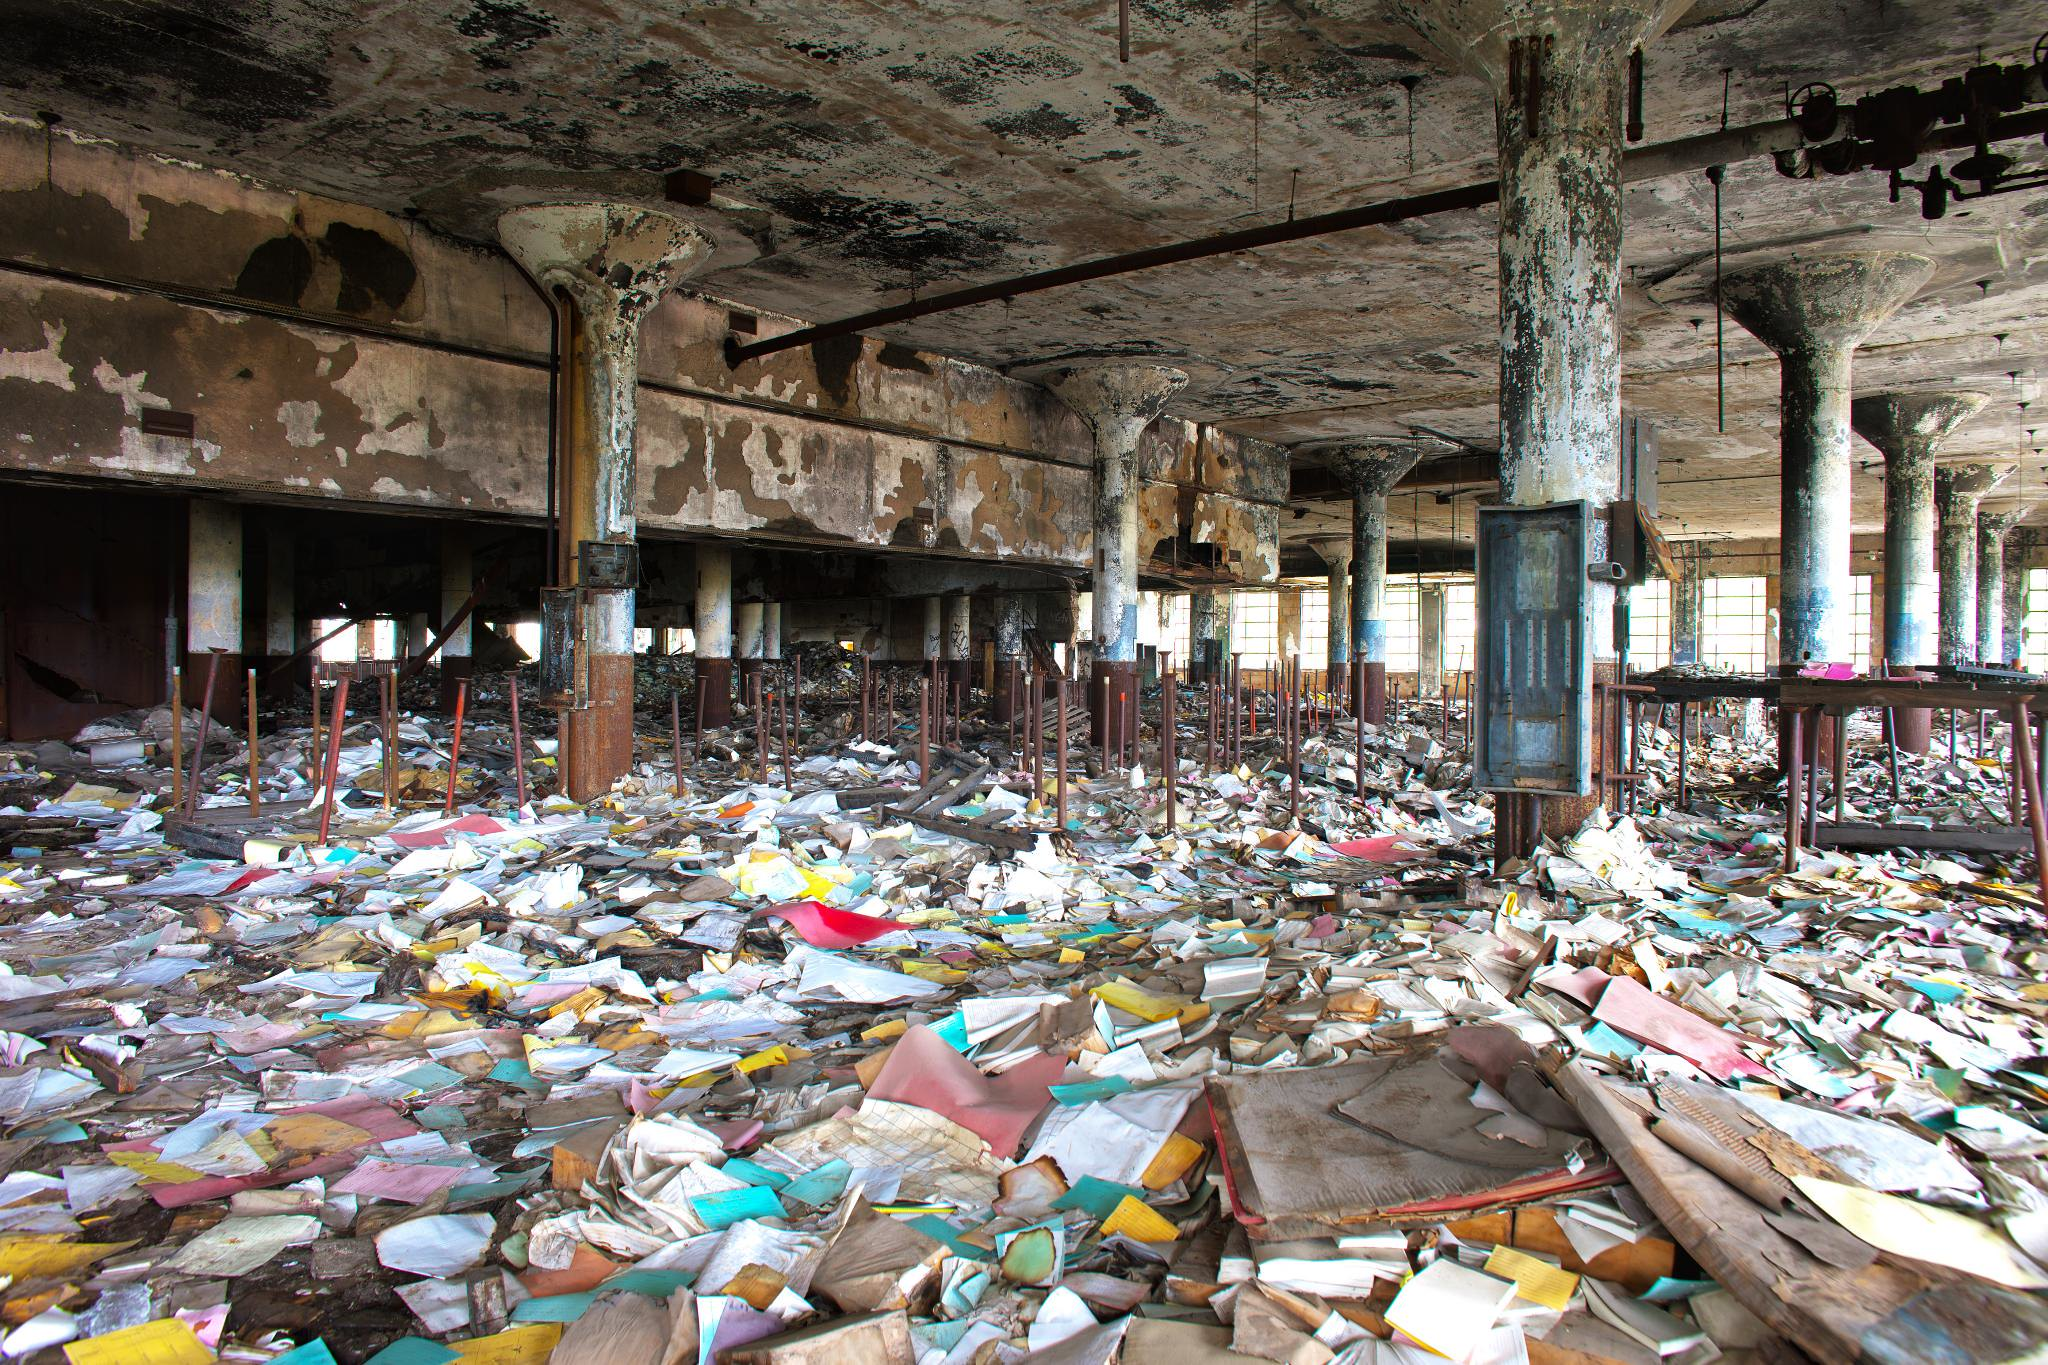 Abandoned warehouse, floor covered with books and papers strewn all around.